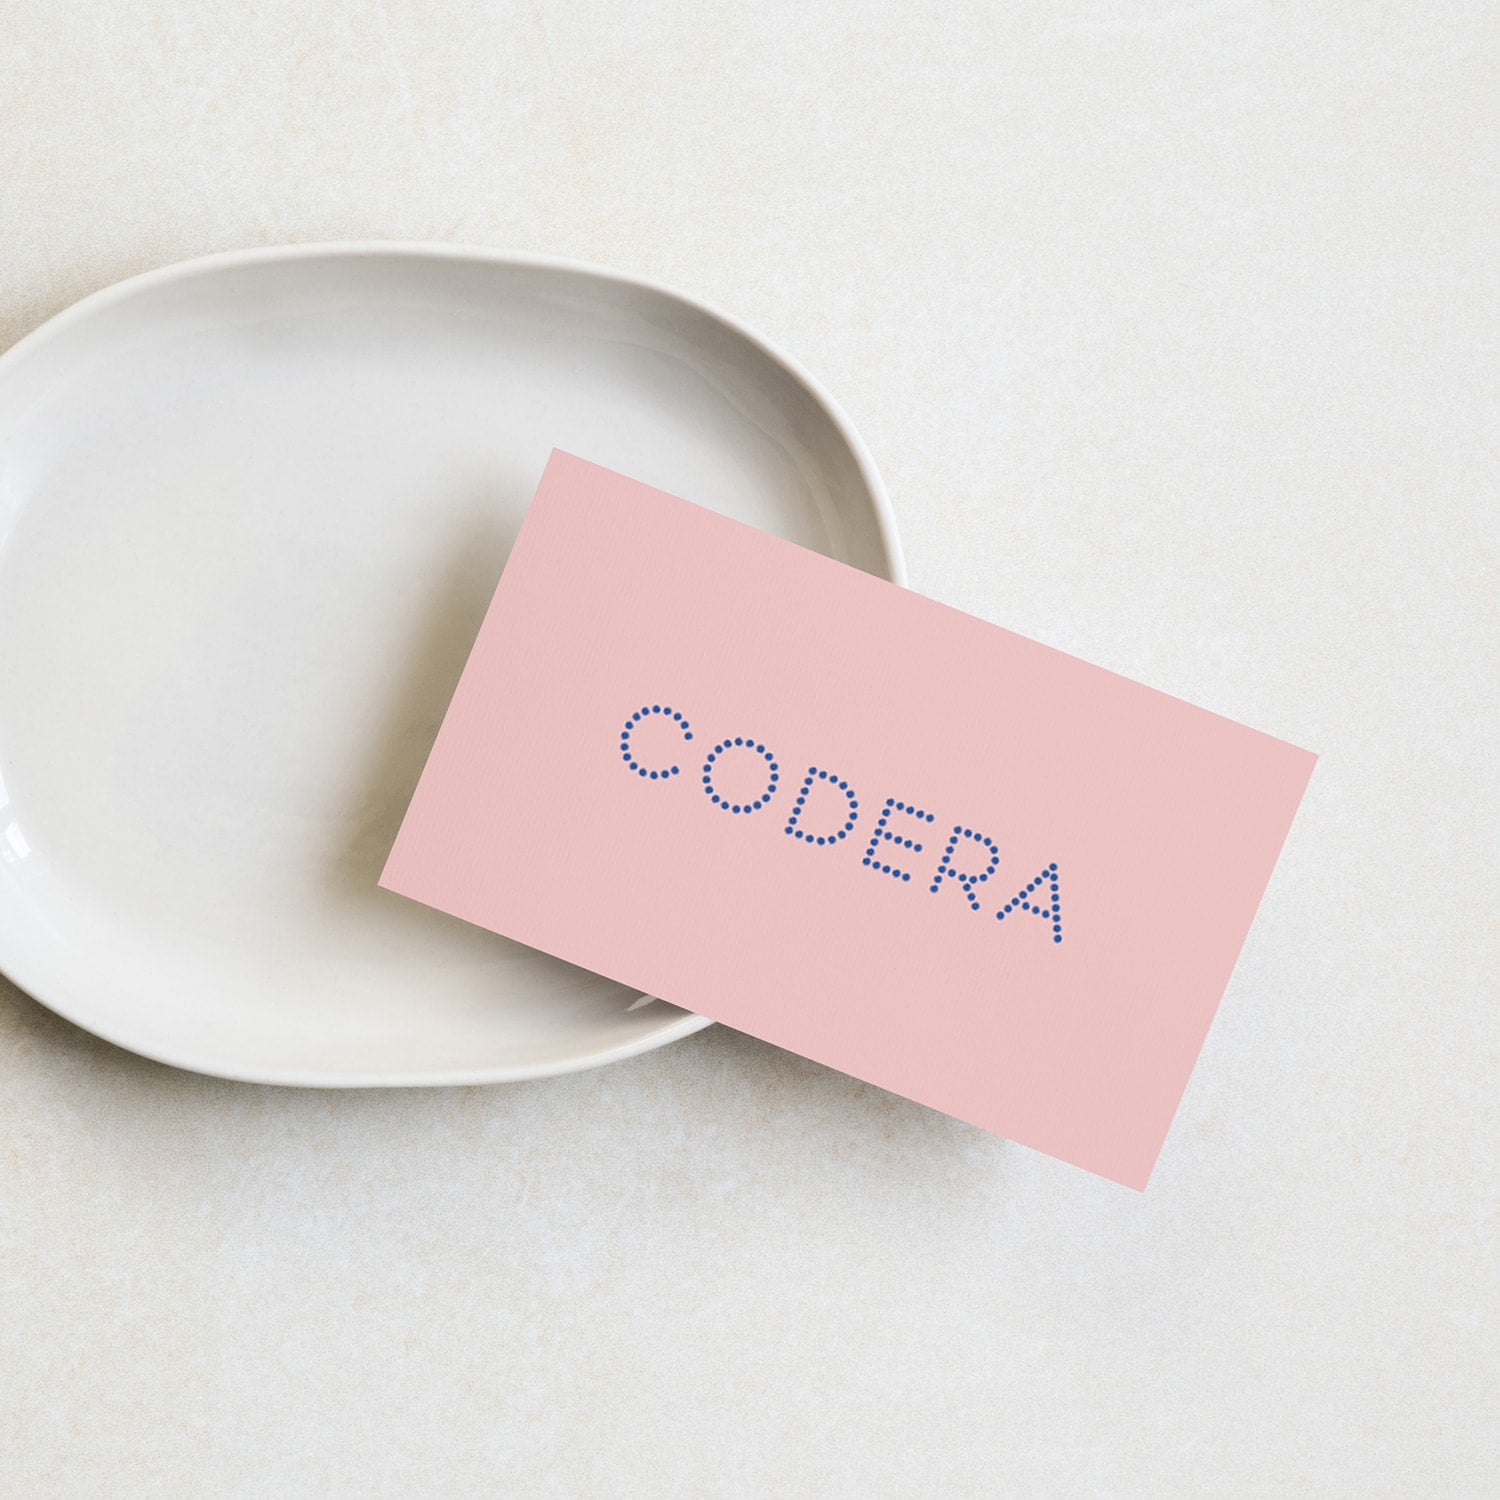 Codera Hero Branding Kit Image_Copyright Tiny Crowd